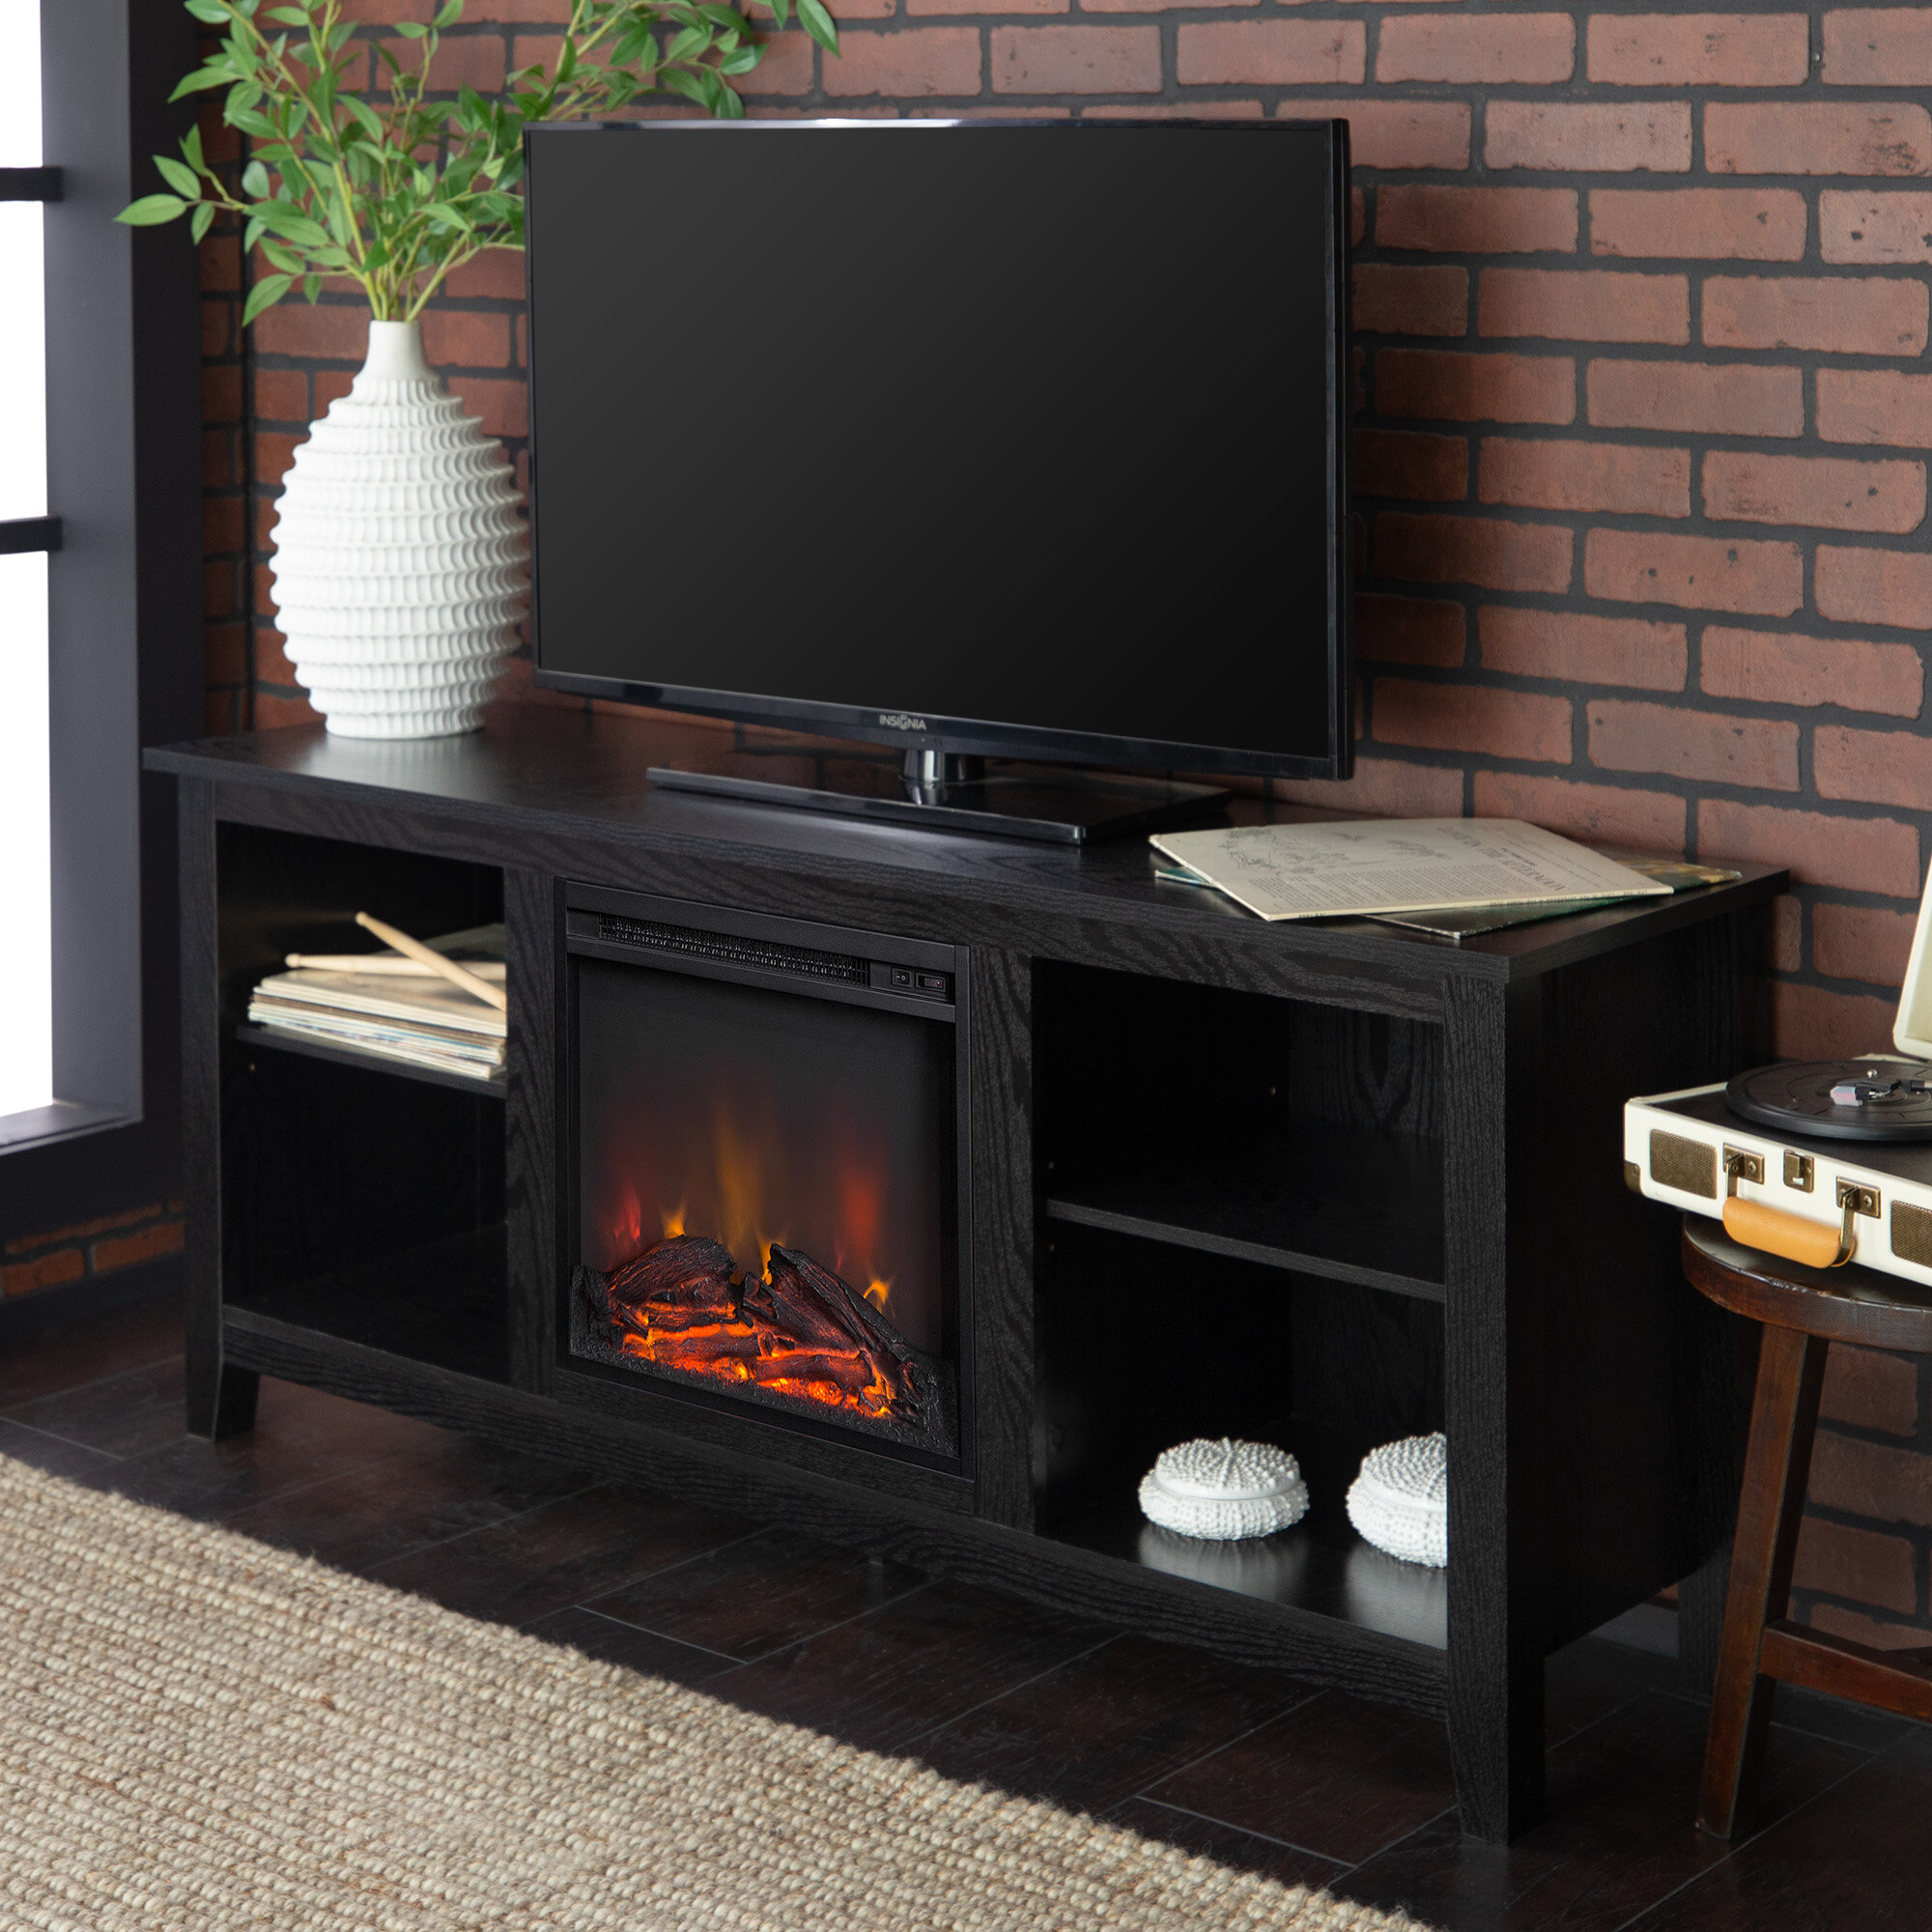 Sunbury Tv Stand For Tvs Up To 60 With Electric Fireplace